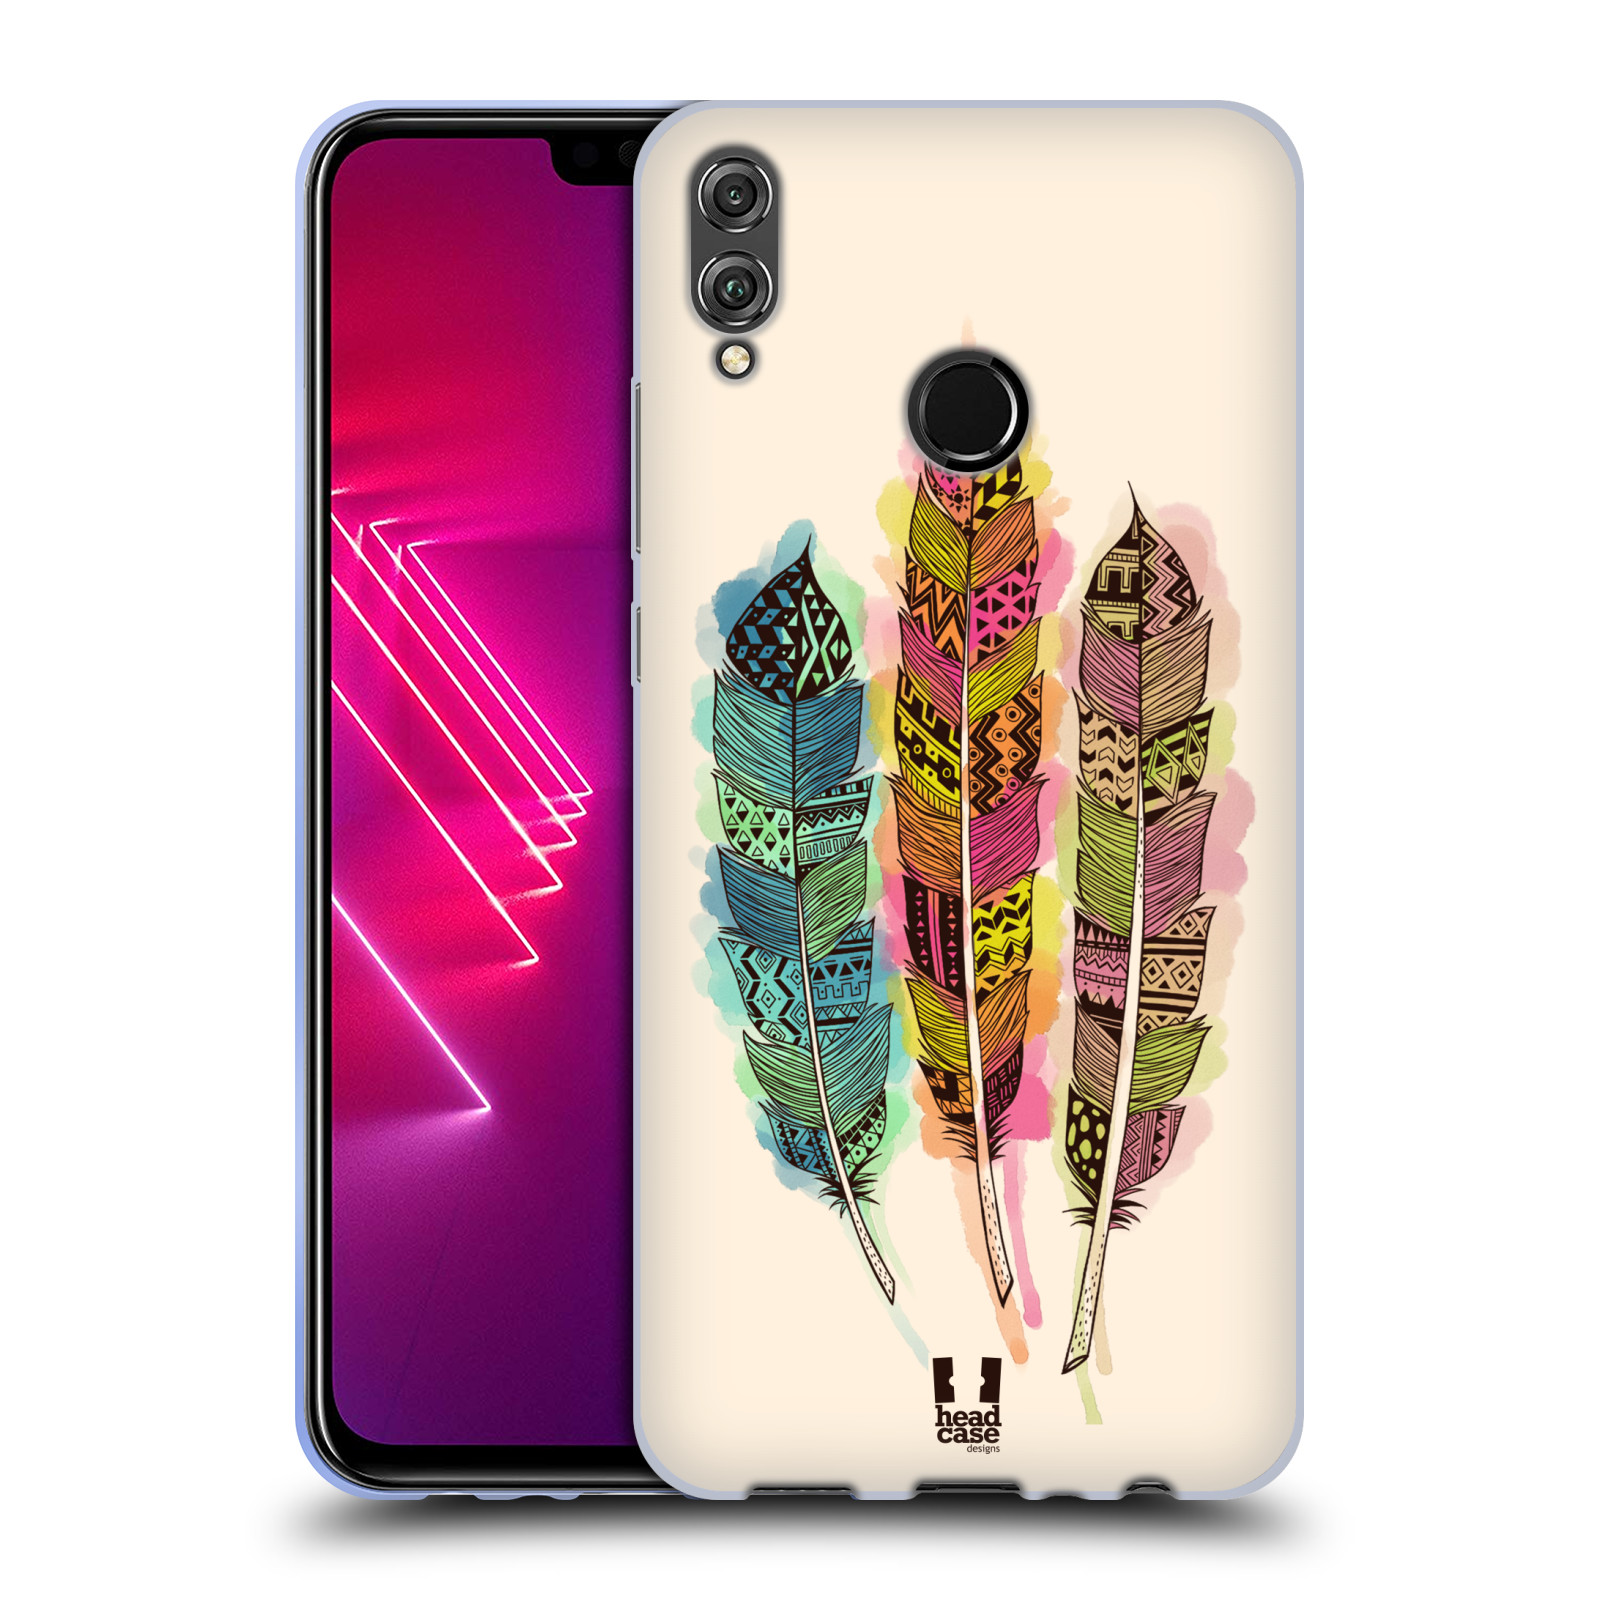 Silikonové pouzdro na mobil Honor View 10 Lite - Head Case - AZTEC PÍRKA SPLASH